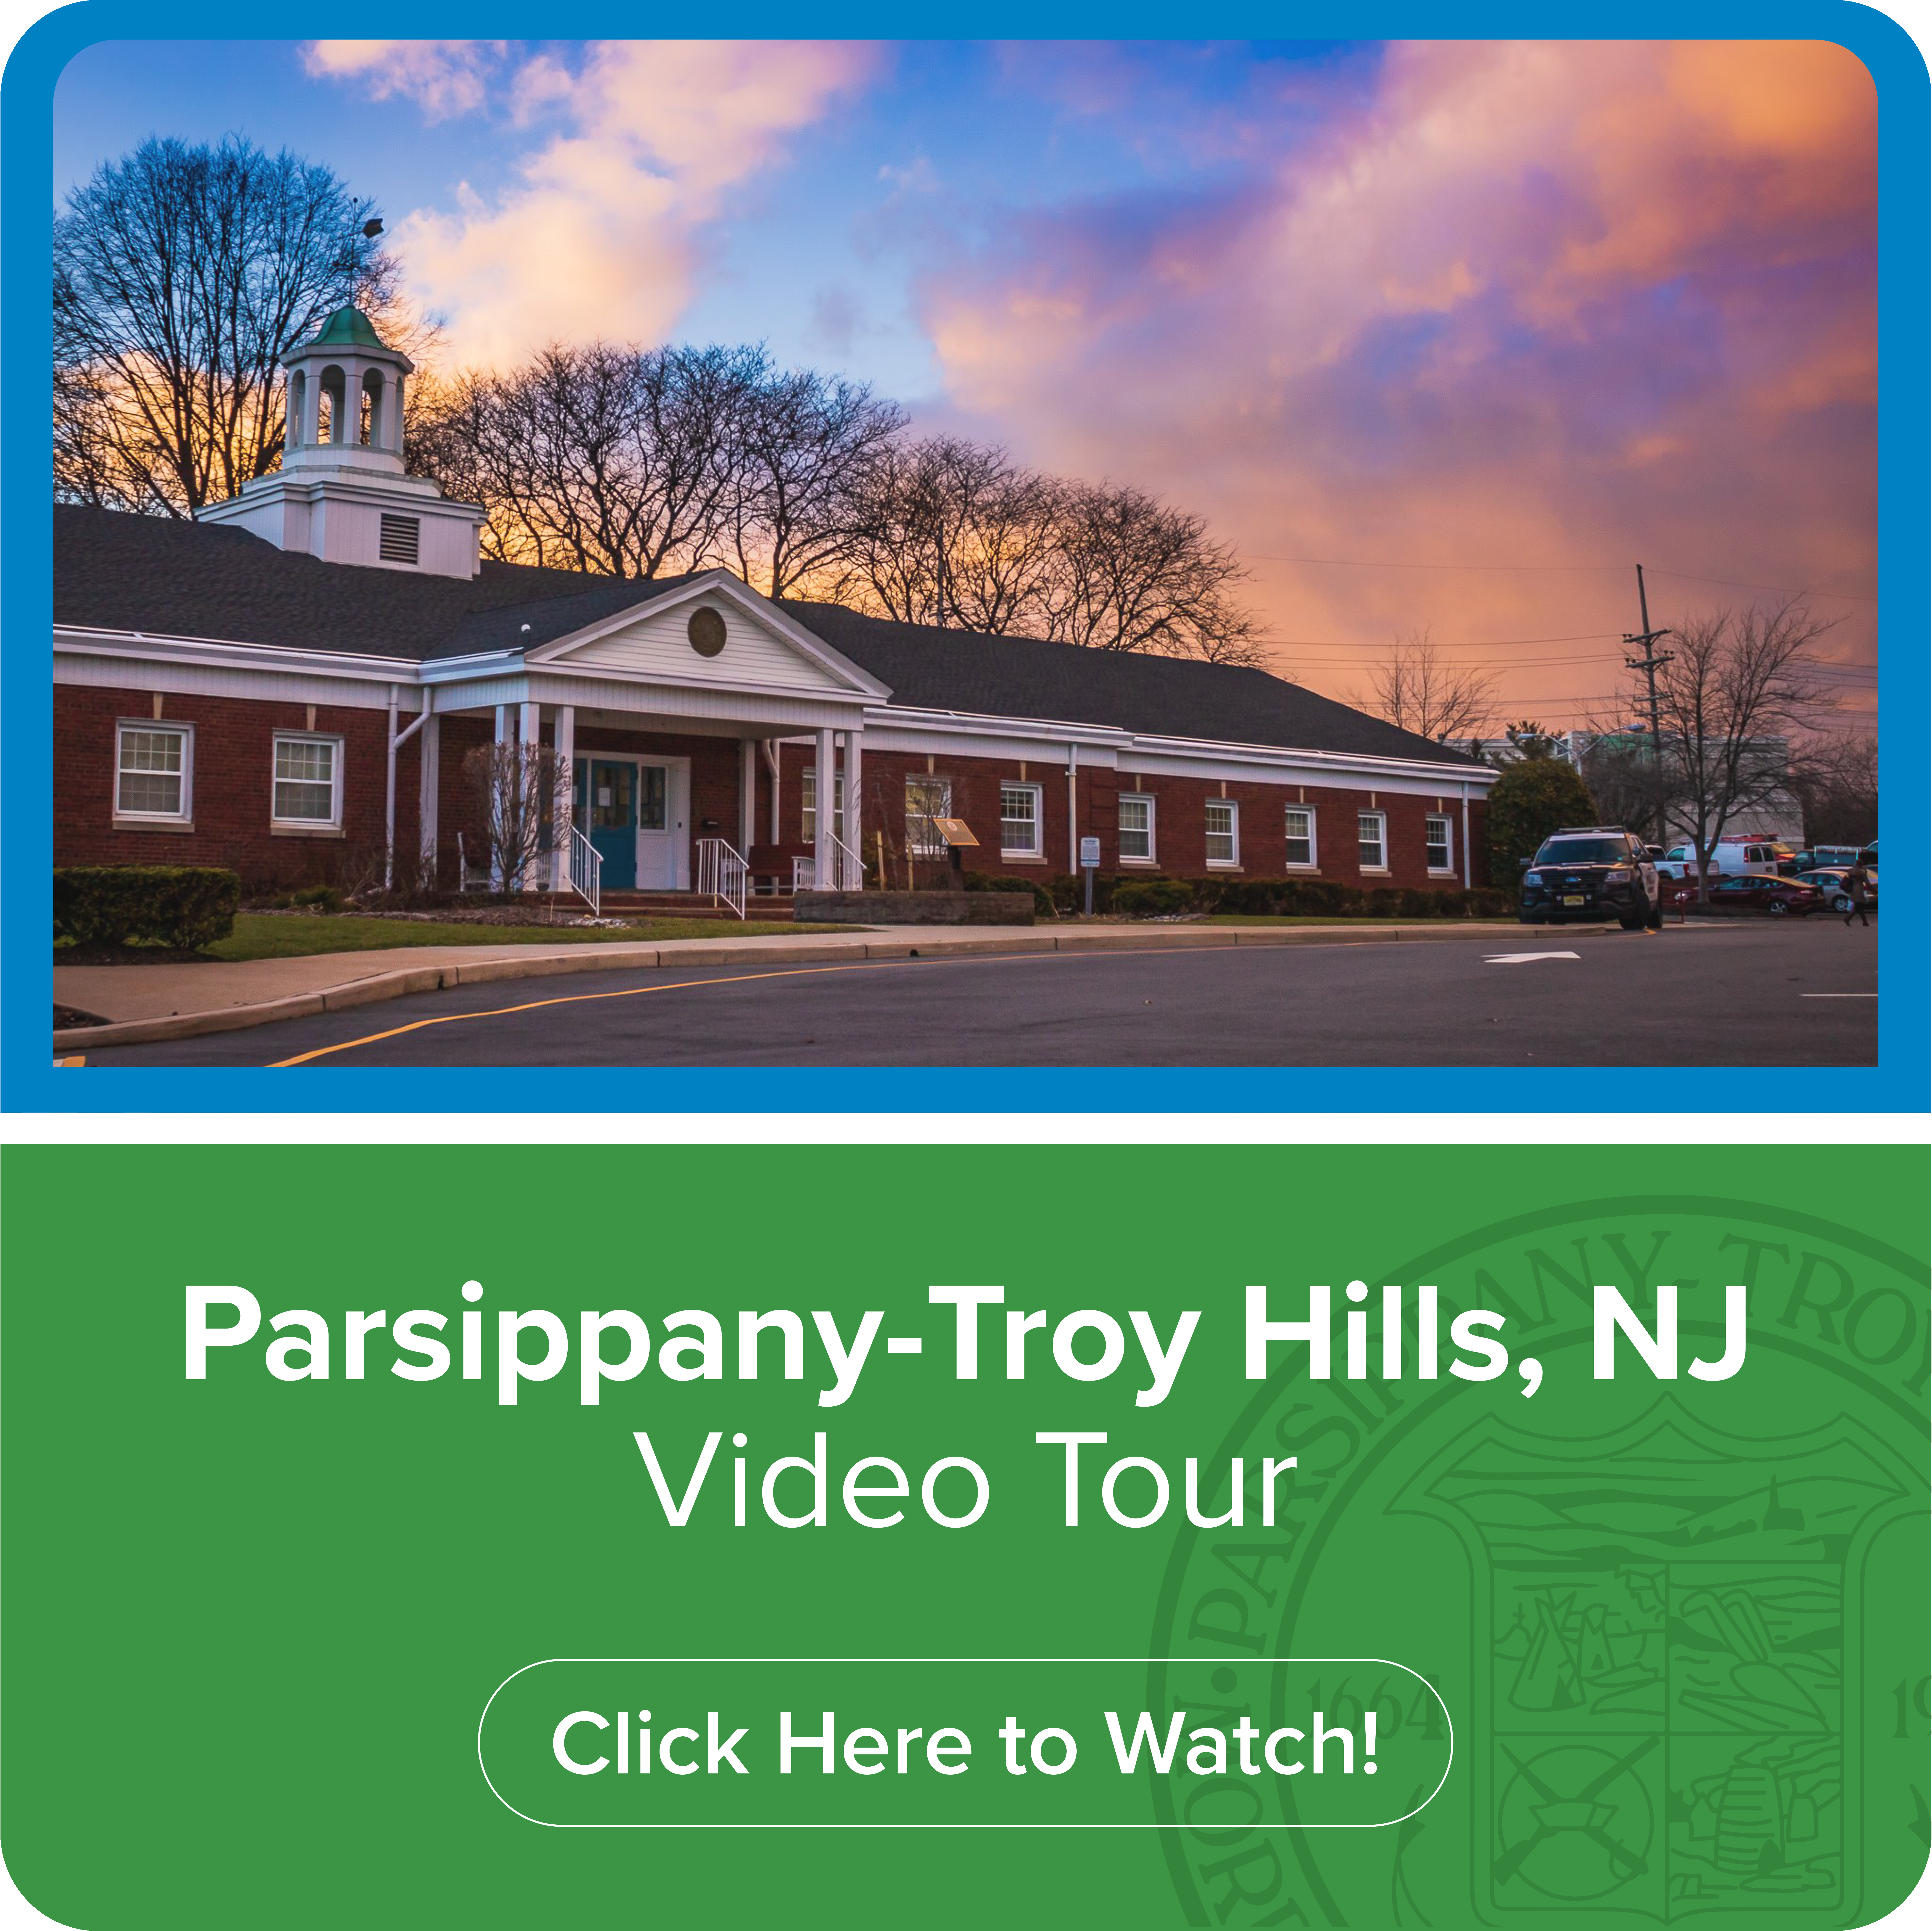 Parsippany-Troy Hills Video Tour